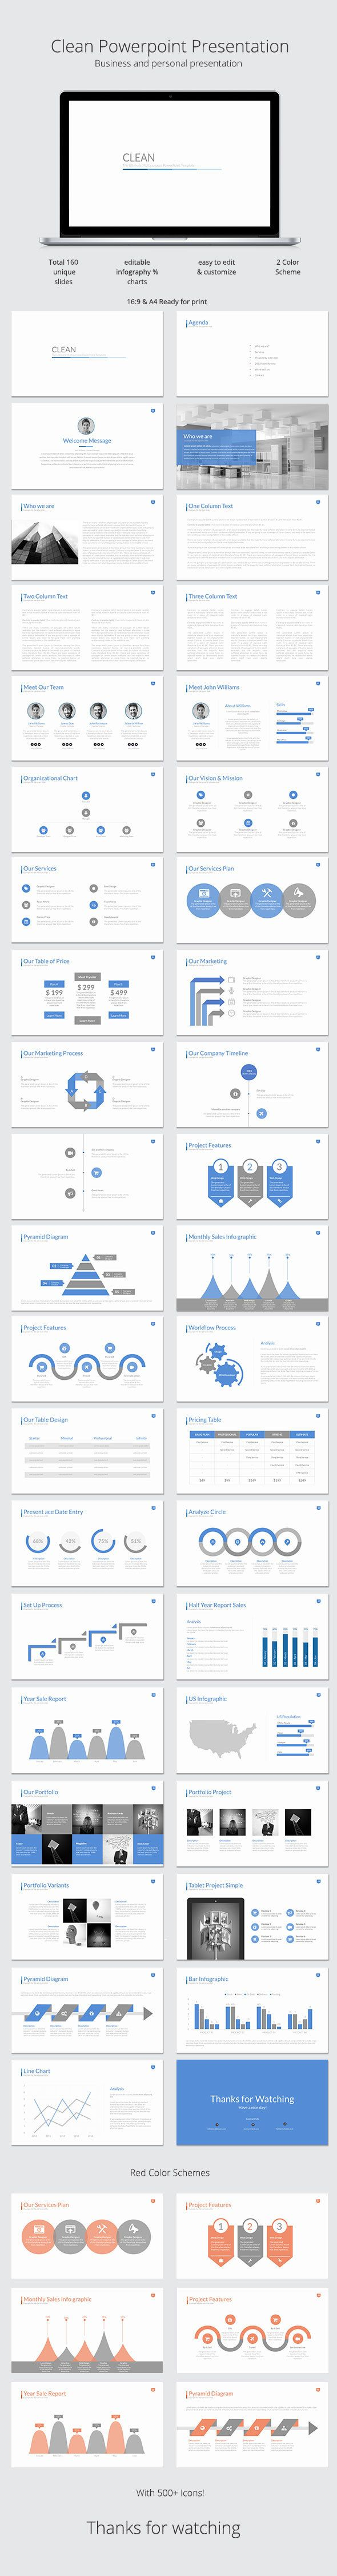 Usdgus  Seductive  Ideas About Powerpoint Presentations On Pinterest With Likable Clean Powerpoint Template With Agreeable Plantillas De Powerpoint Also Video In Powerpoint In Addition How To Put Music On Powerpoint And Crucial Conversations Powerpoint As Well As Powerpoint Curved Text Additionally How To Powerpoint From Pinterestcom With Usdgus  Likable  Ideas About Powerpoint Presentations On Pinterest With Agreeable Clean Powerpoint Template And Seductive Plantillas De Powerpoint Also Video In Powerpoint In Addition How To Put Music On Powerpoint From Pinterestcom